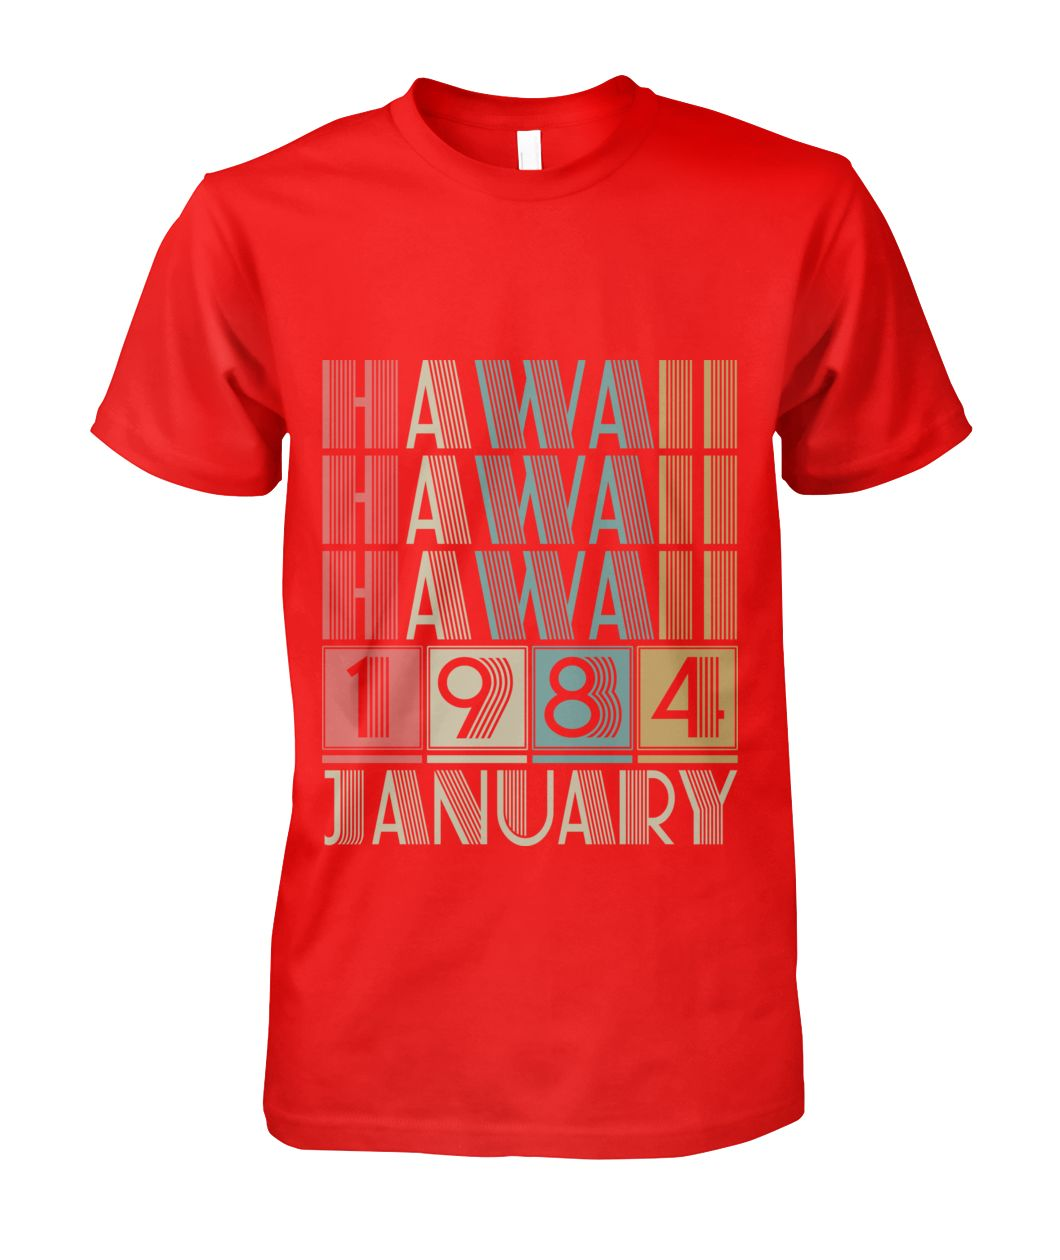 Born in Hawaii in January 1984 t shirt-Short Sleeves - TEEHOT.COM